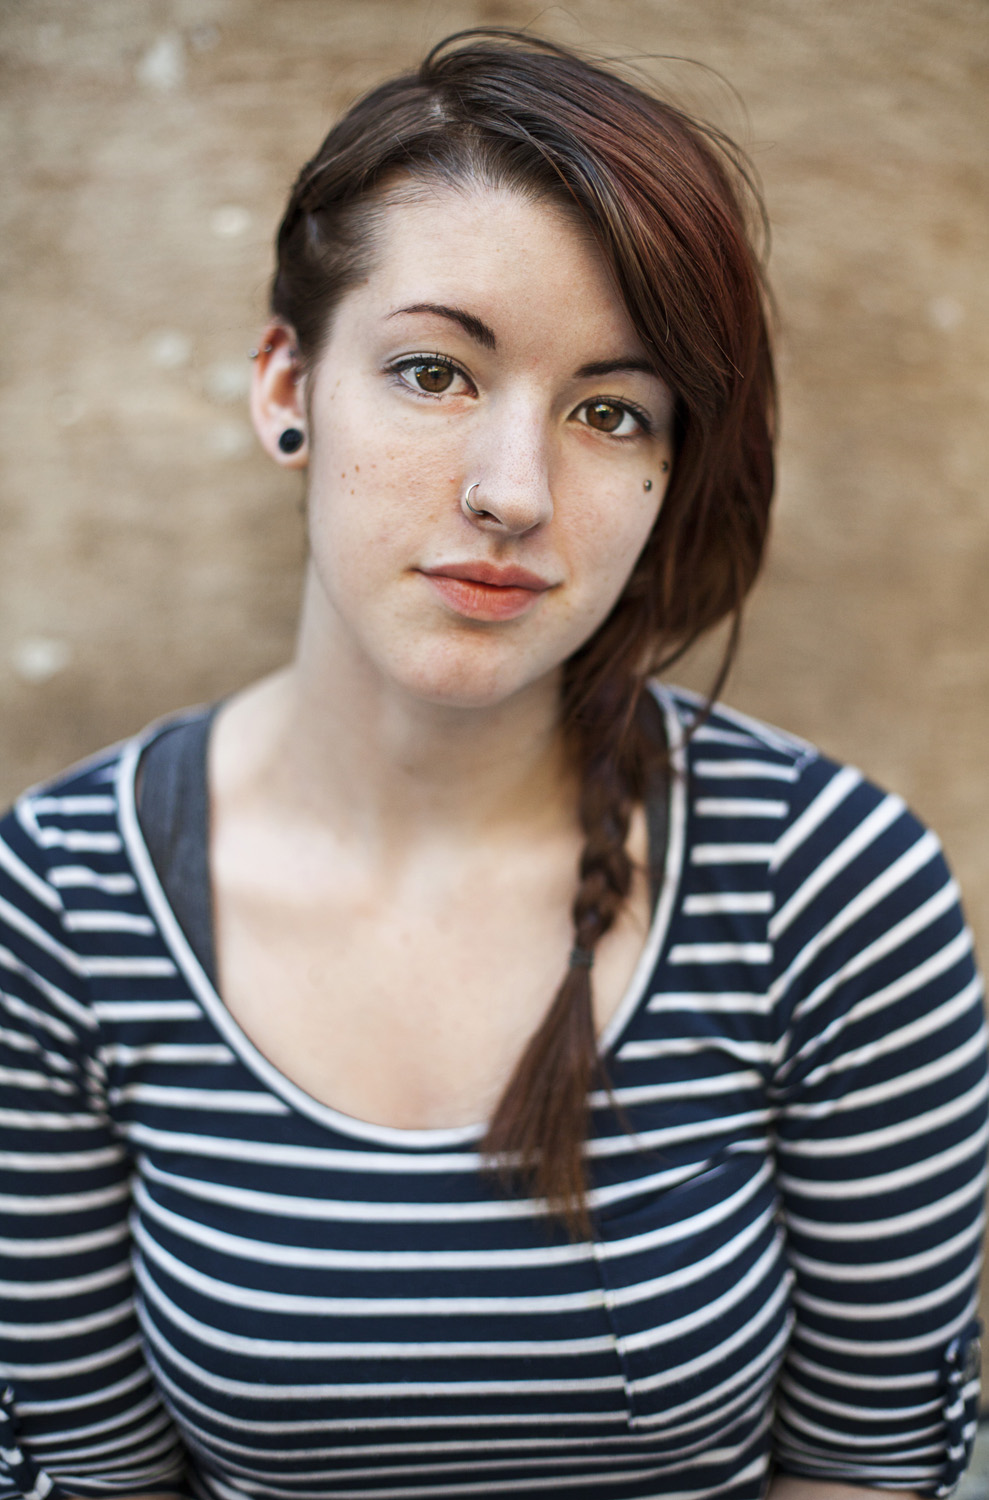 Girl in Stripes.jpg